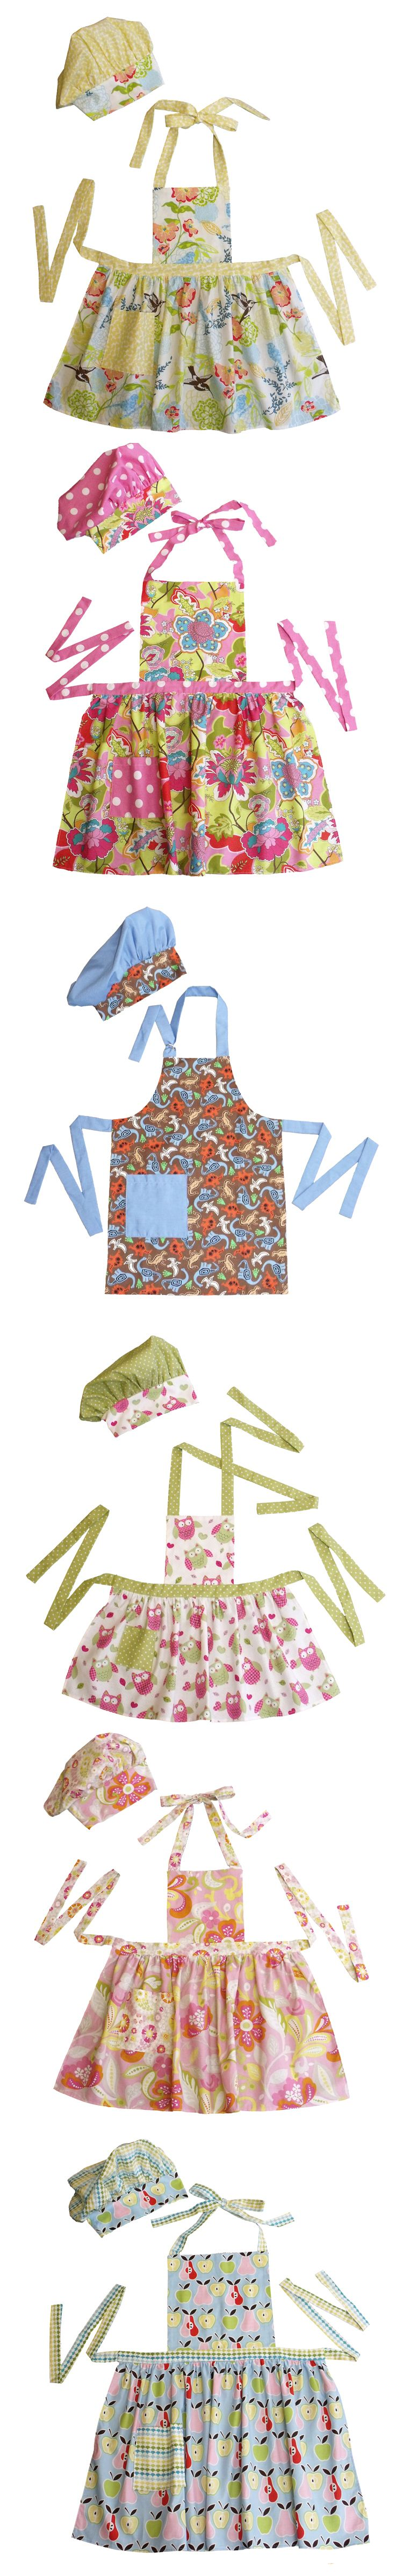 Super-cute hand-made children\'s aprons for dress up. | Sewing ...